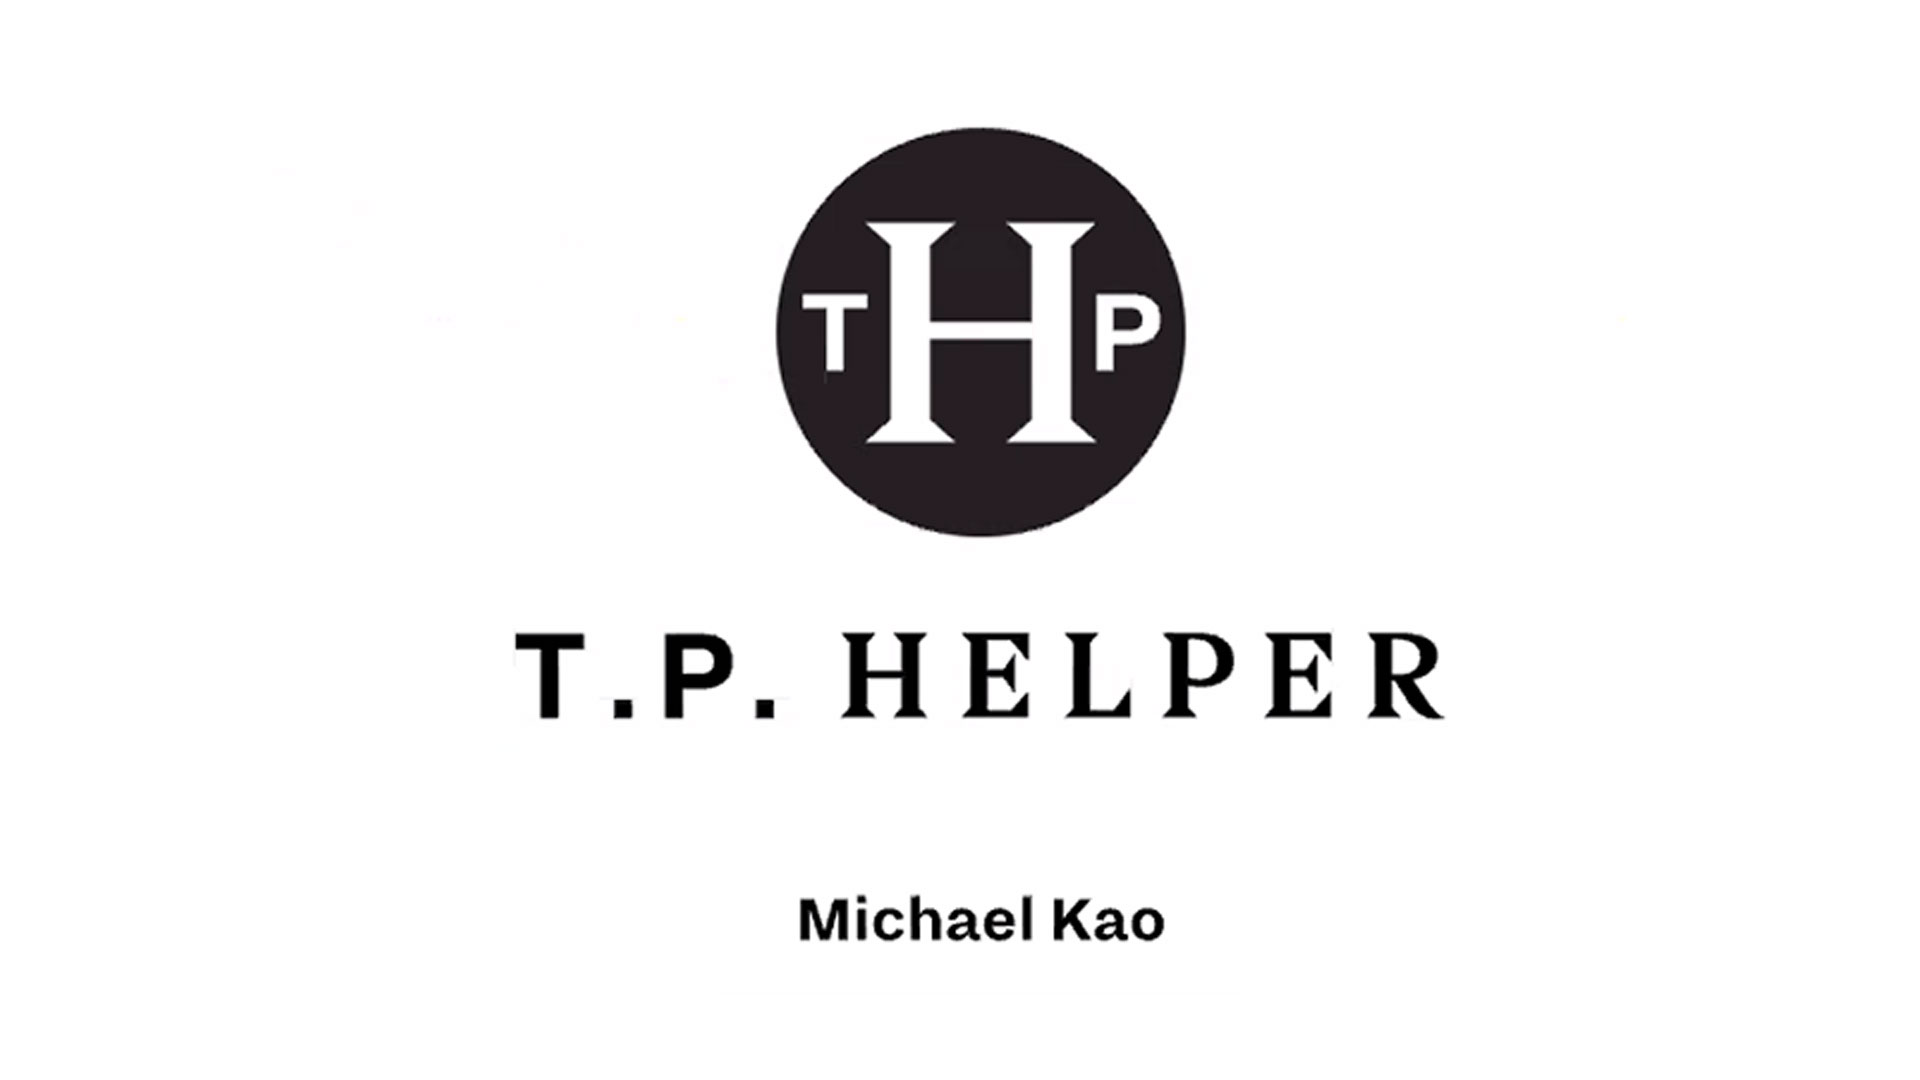 TP helper logo